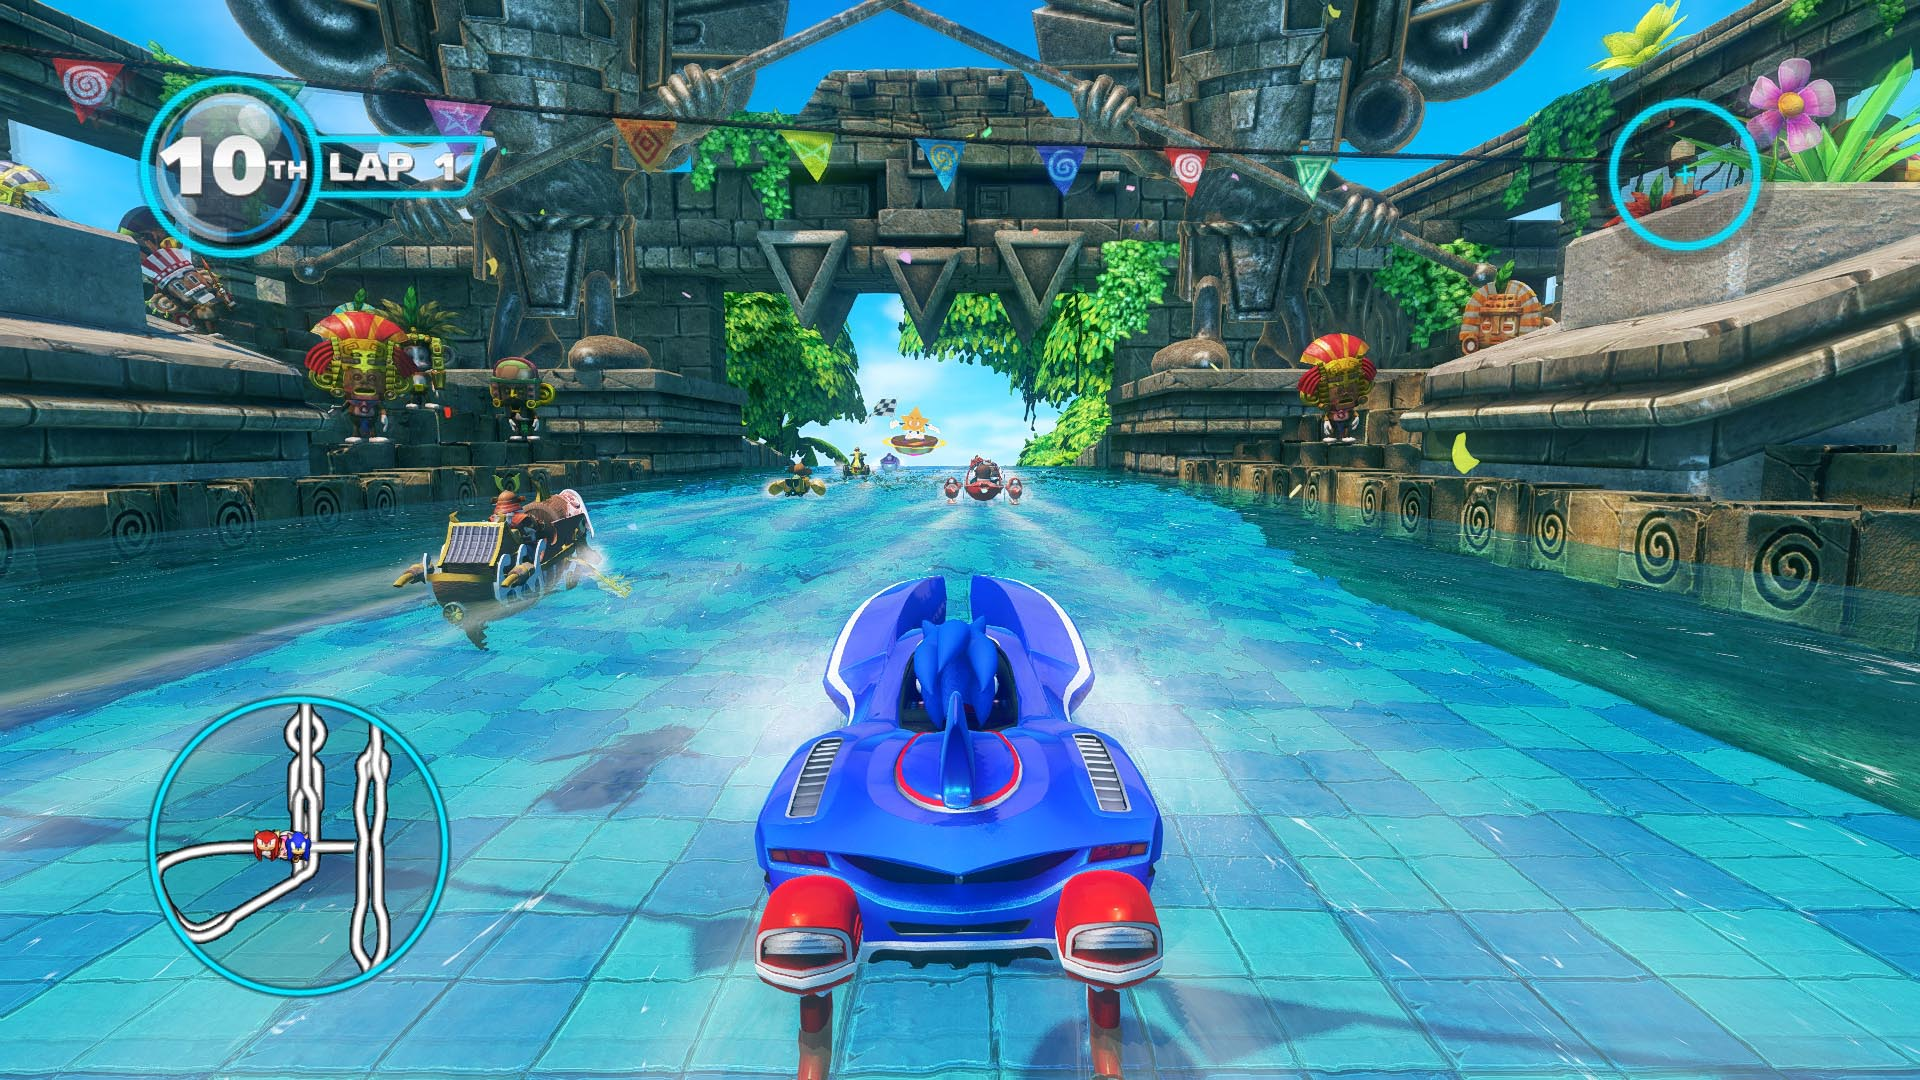 Love <i>Mario Kart </i>but don't have a Nintendo console? This is <i>the</i> multiplatform, multiplayer game, with support for online <i>and</i> local multiplayer on all platforms. And you're racing vehicles that transform between car, boat, and plane modes, all within the same race. | <b>For:</b> PC, Wii U, PS3, Xbox 360, 3DS, Vita, iOS, Android